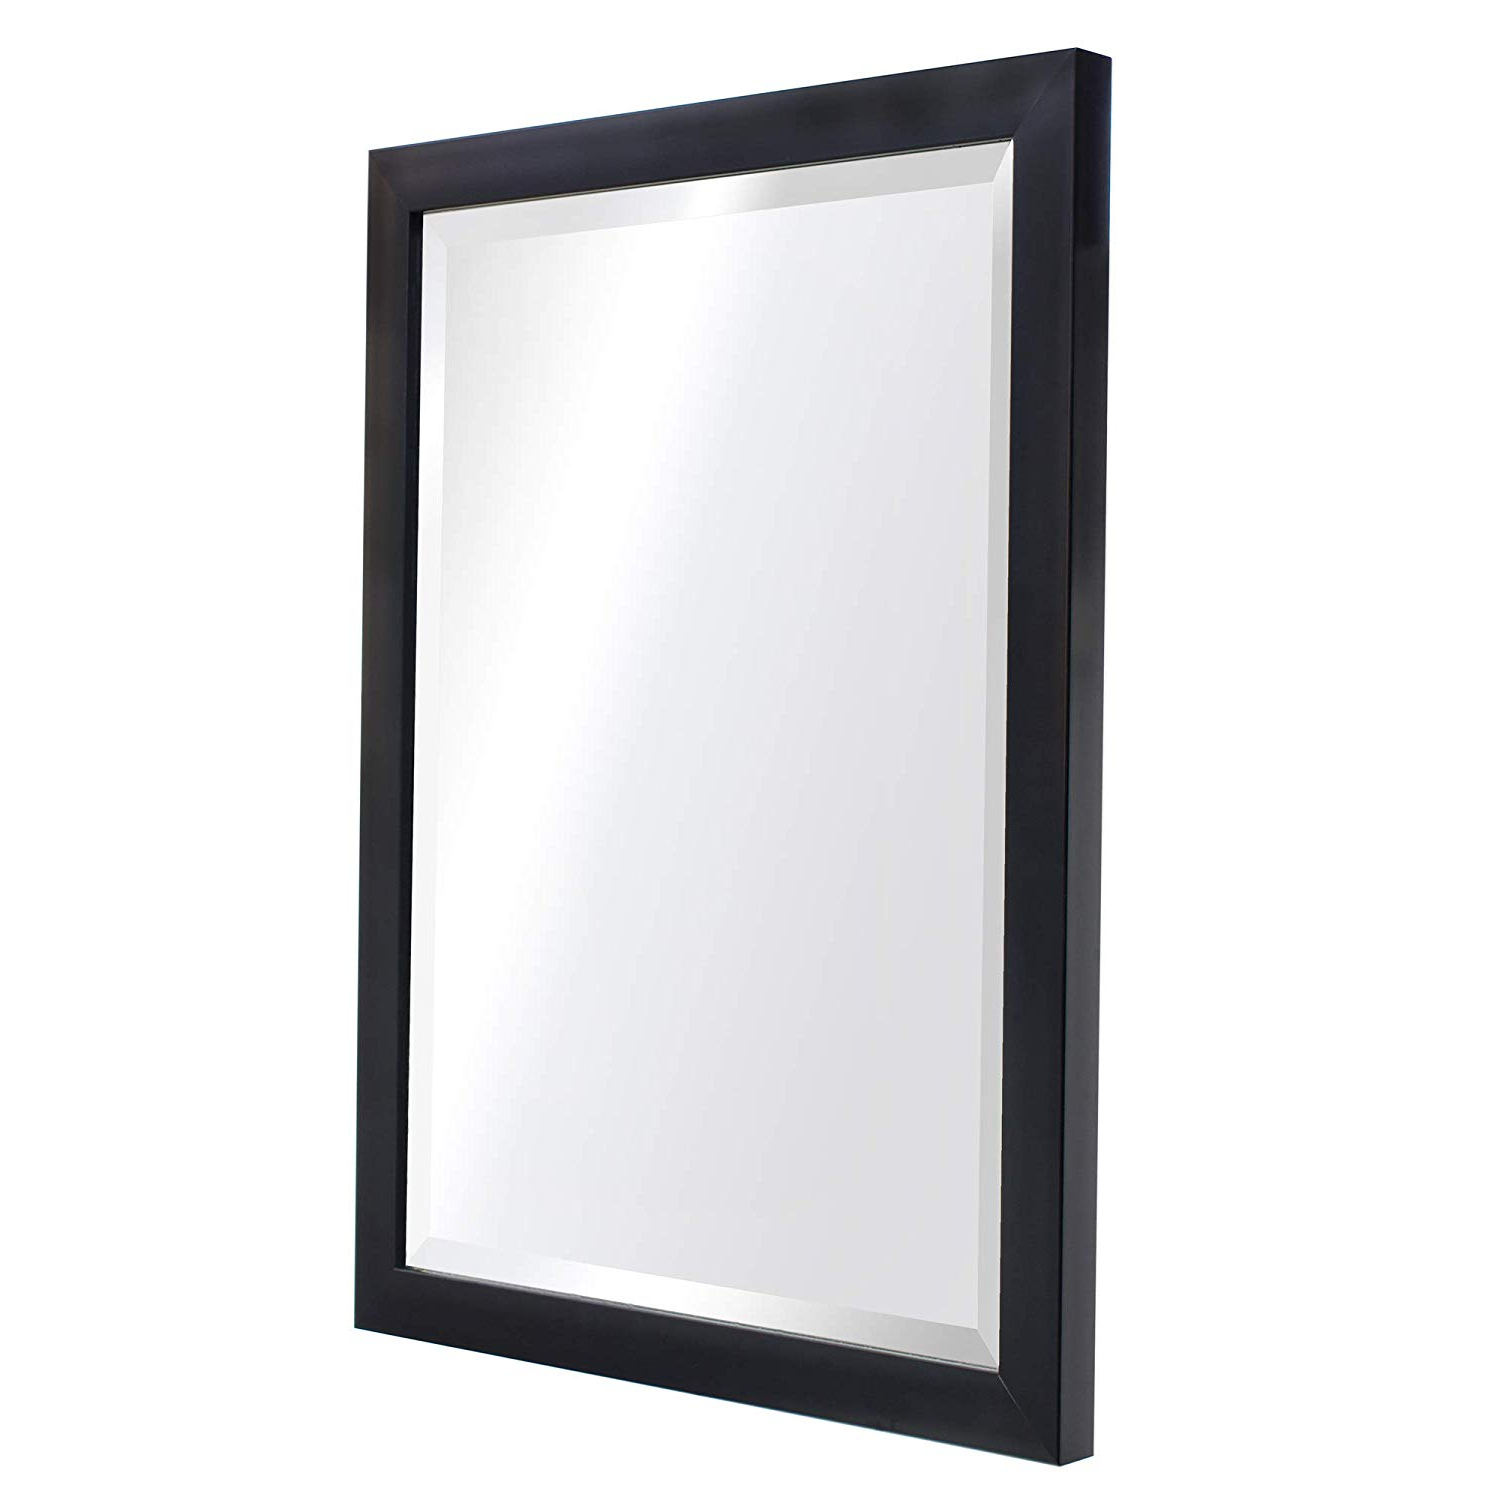 "Modern Black Wall Mirrors Regarding Favorite Mirror Trend Clean Modern Black Frame Wall Mirror Contemporary Style Mirror  For Bathroom Mirror For Living Room For Bedroom Makeup Mirror (16"" X 20"") (Gallery 1 of 20)"